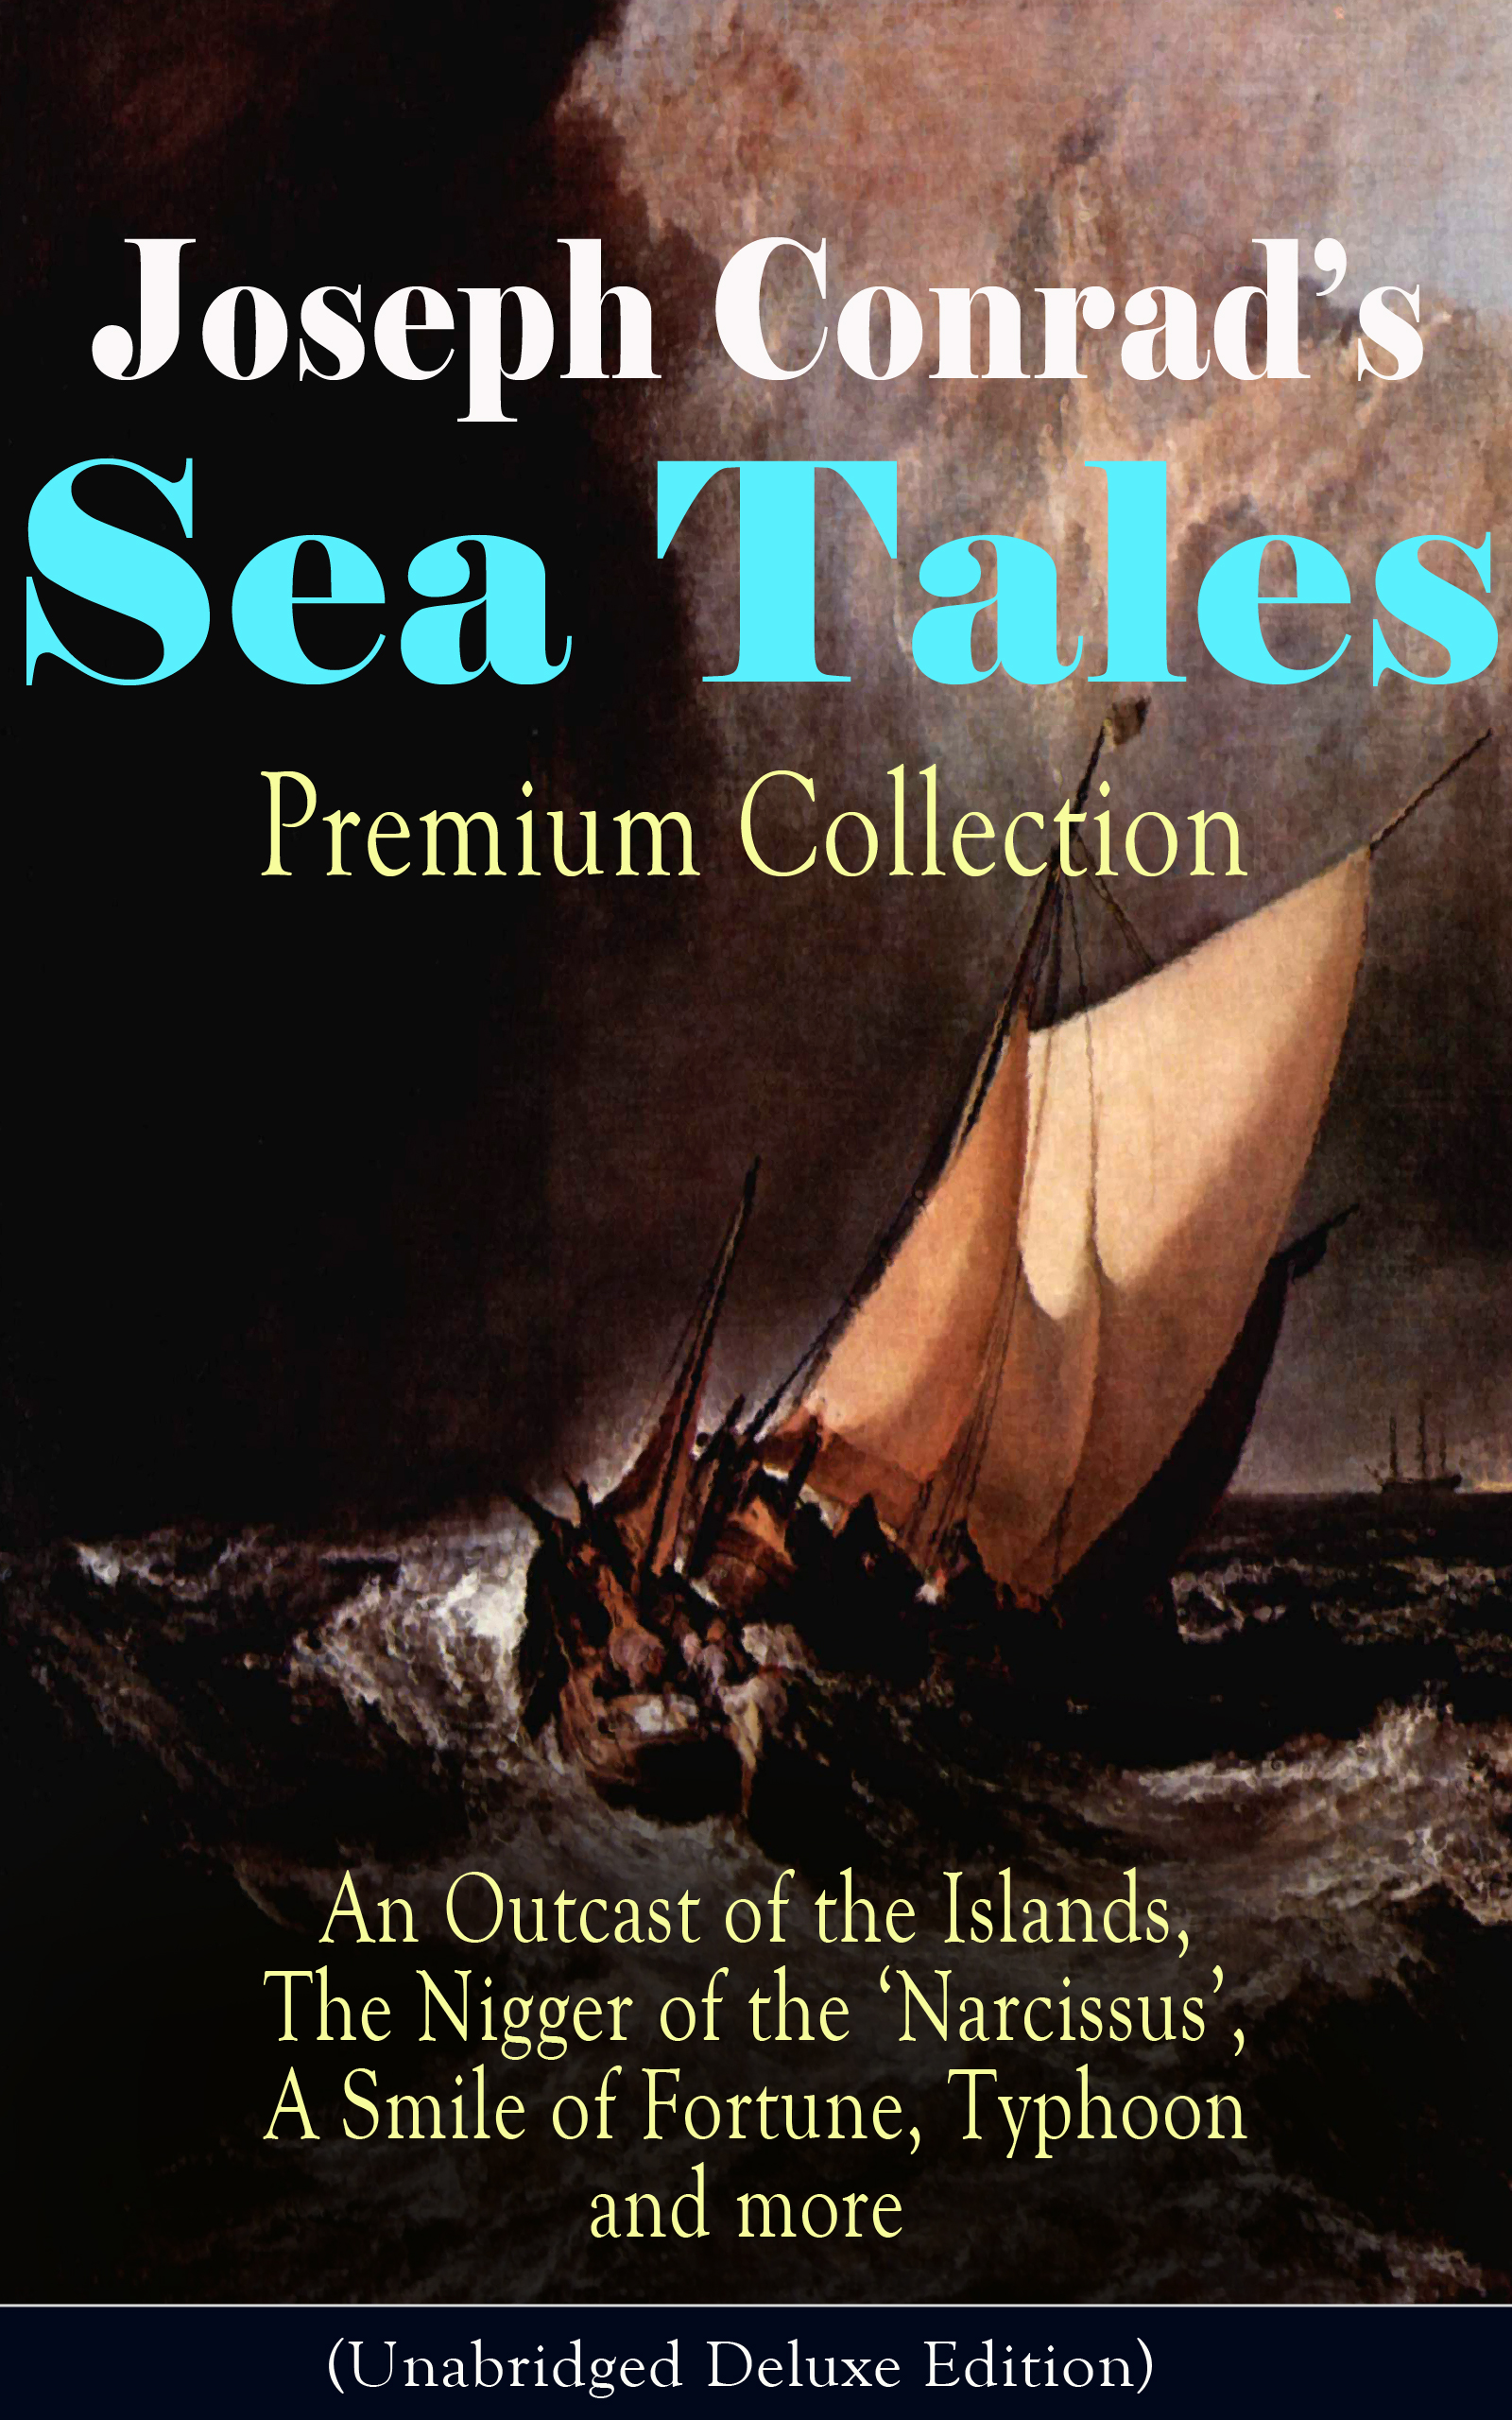 joseph conrads sea tales premium collection an outcast of the islands the nigger of the narcissus a smile of fortune typhoon and more